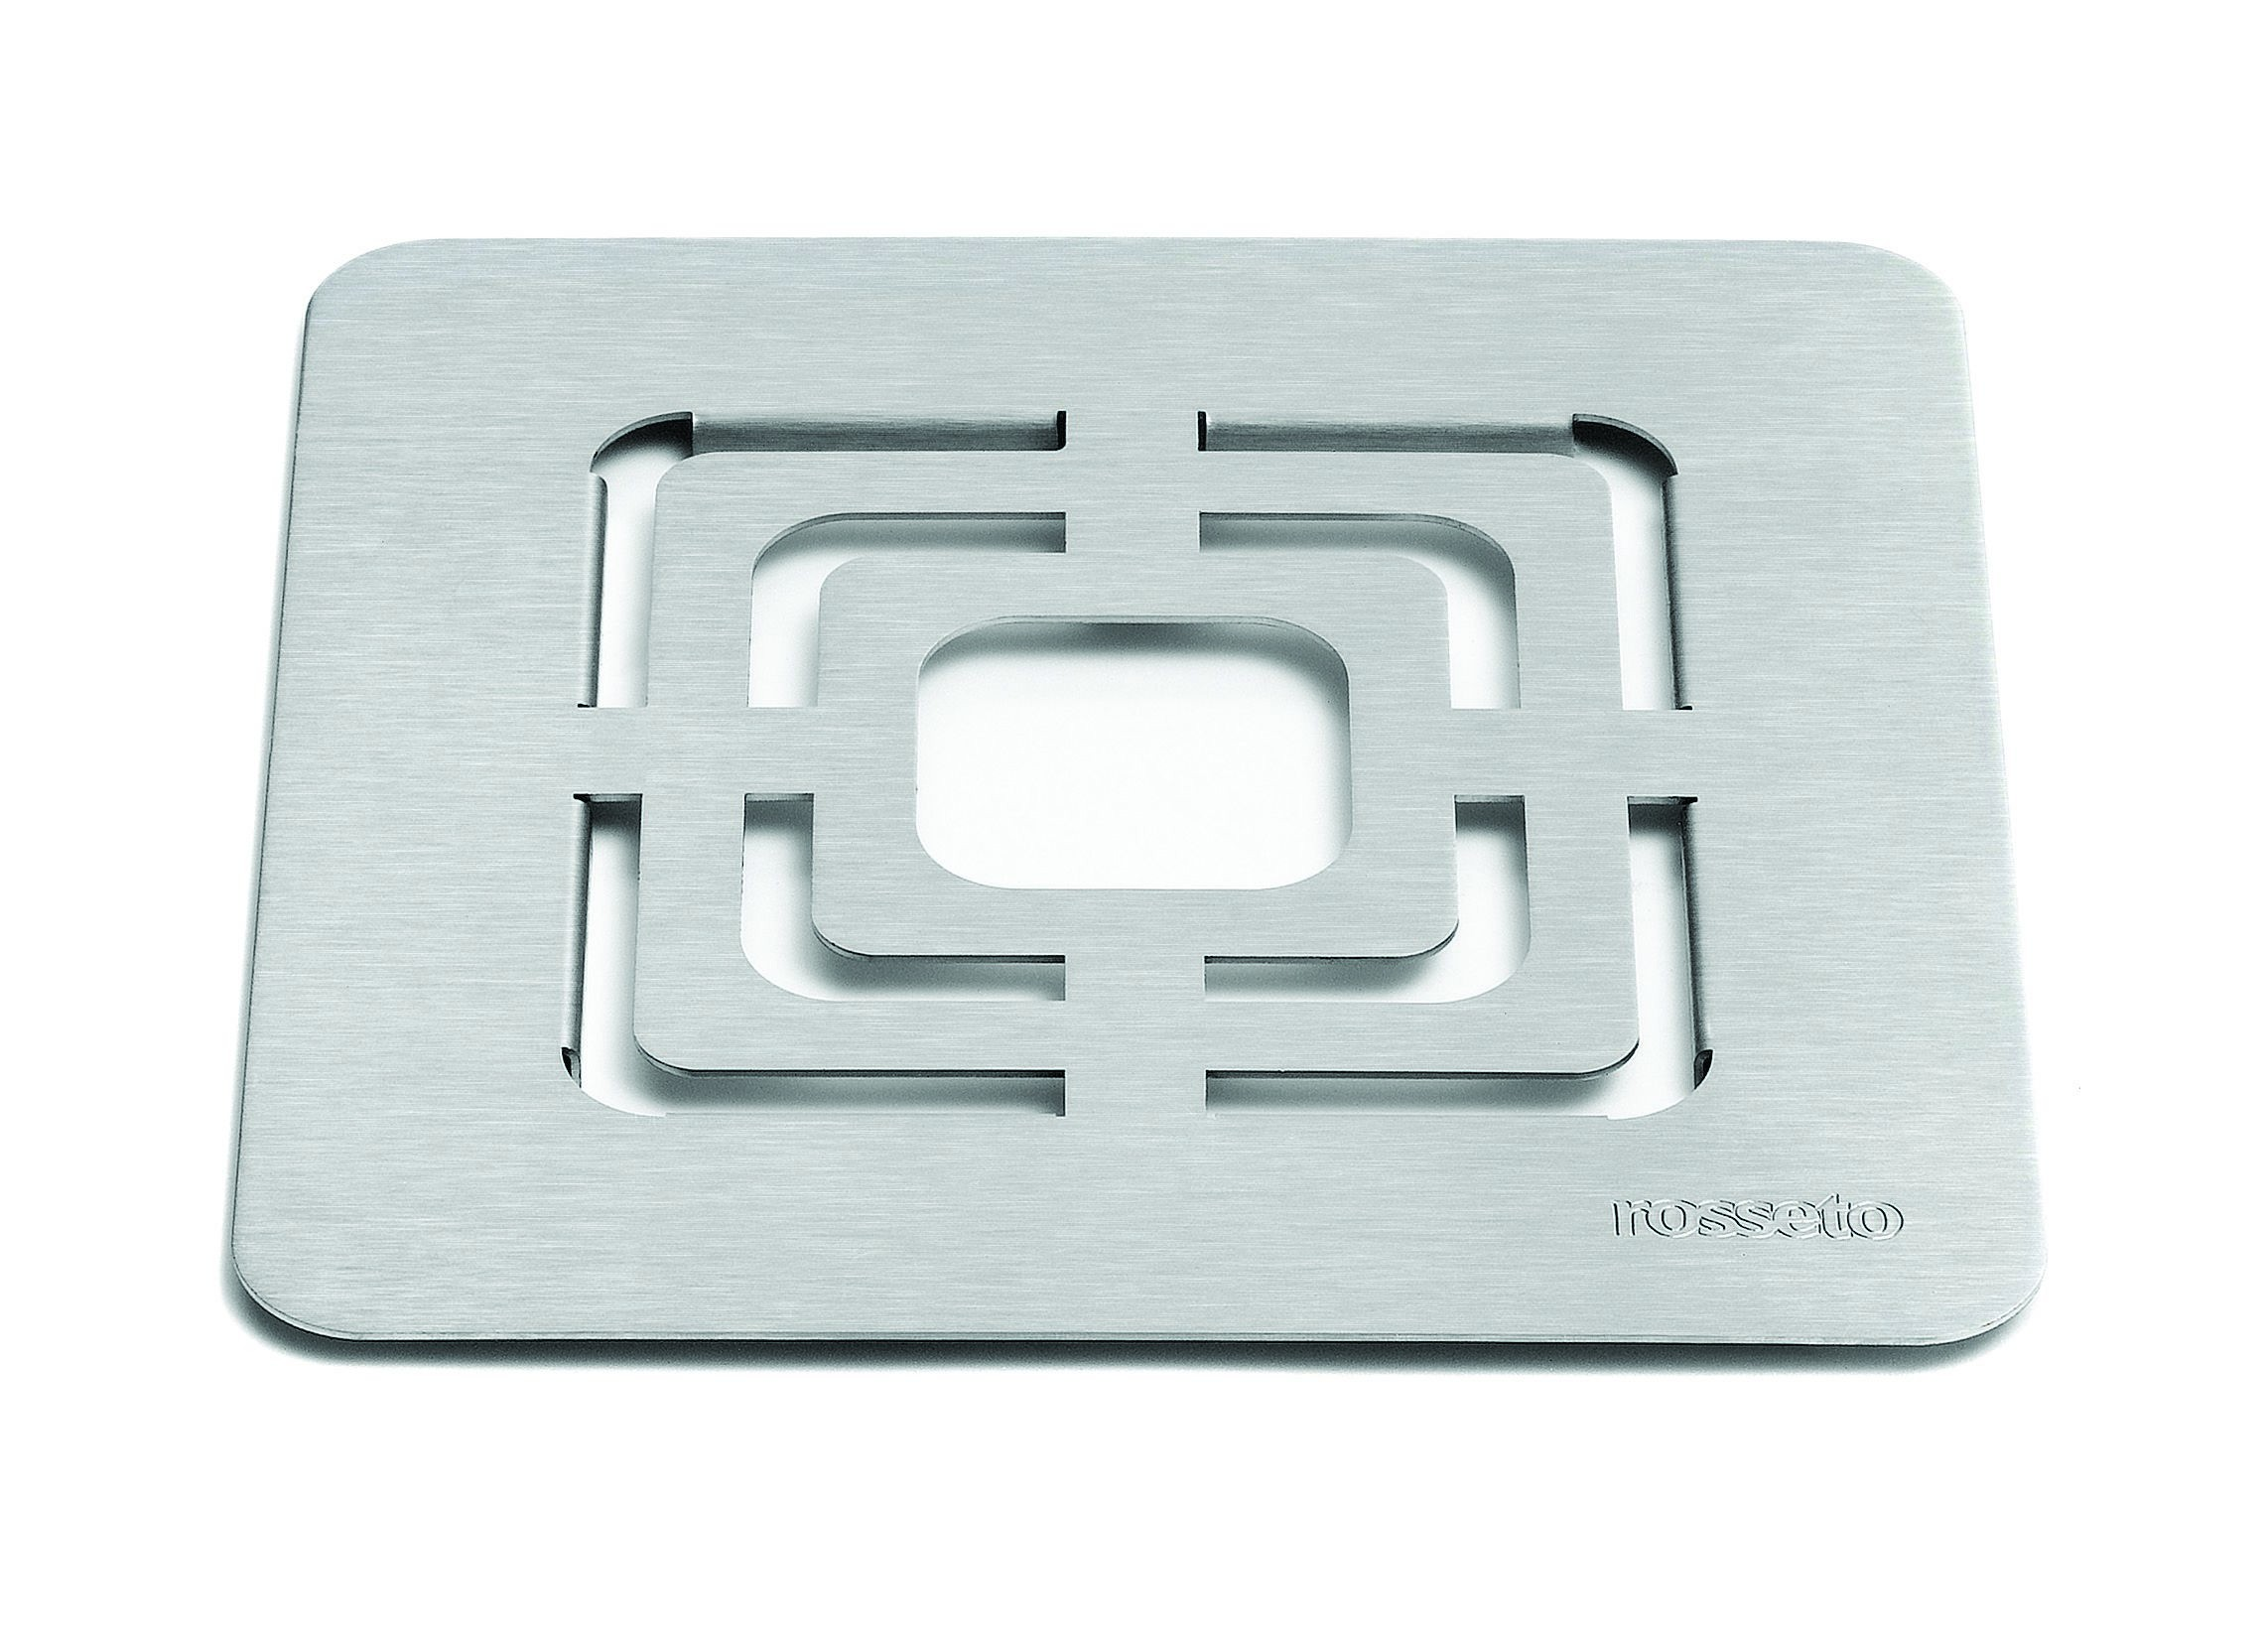 Square Grill Stainless Steel Brushed Finish- 10